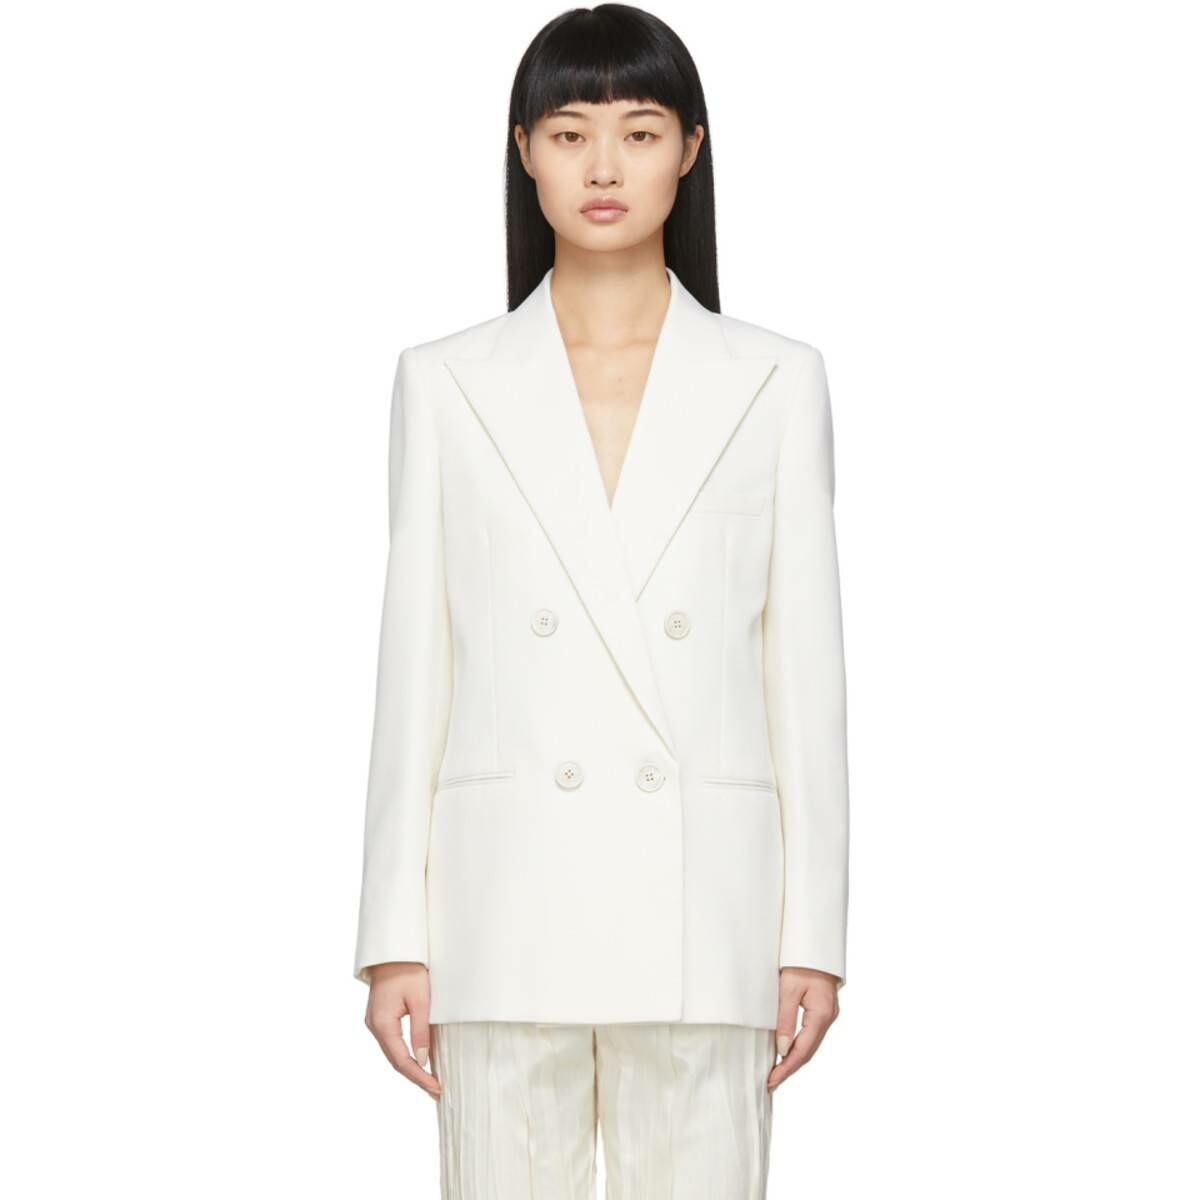 Saint Laurent White Wool Double-Breasted Blazer Ssense USA WOMEN Women FASHION Womens BLAZER